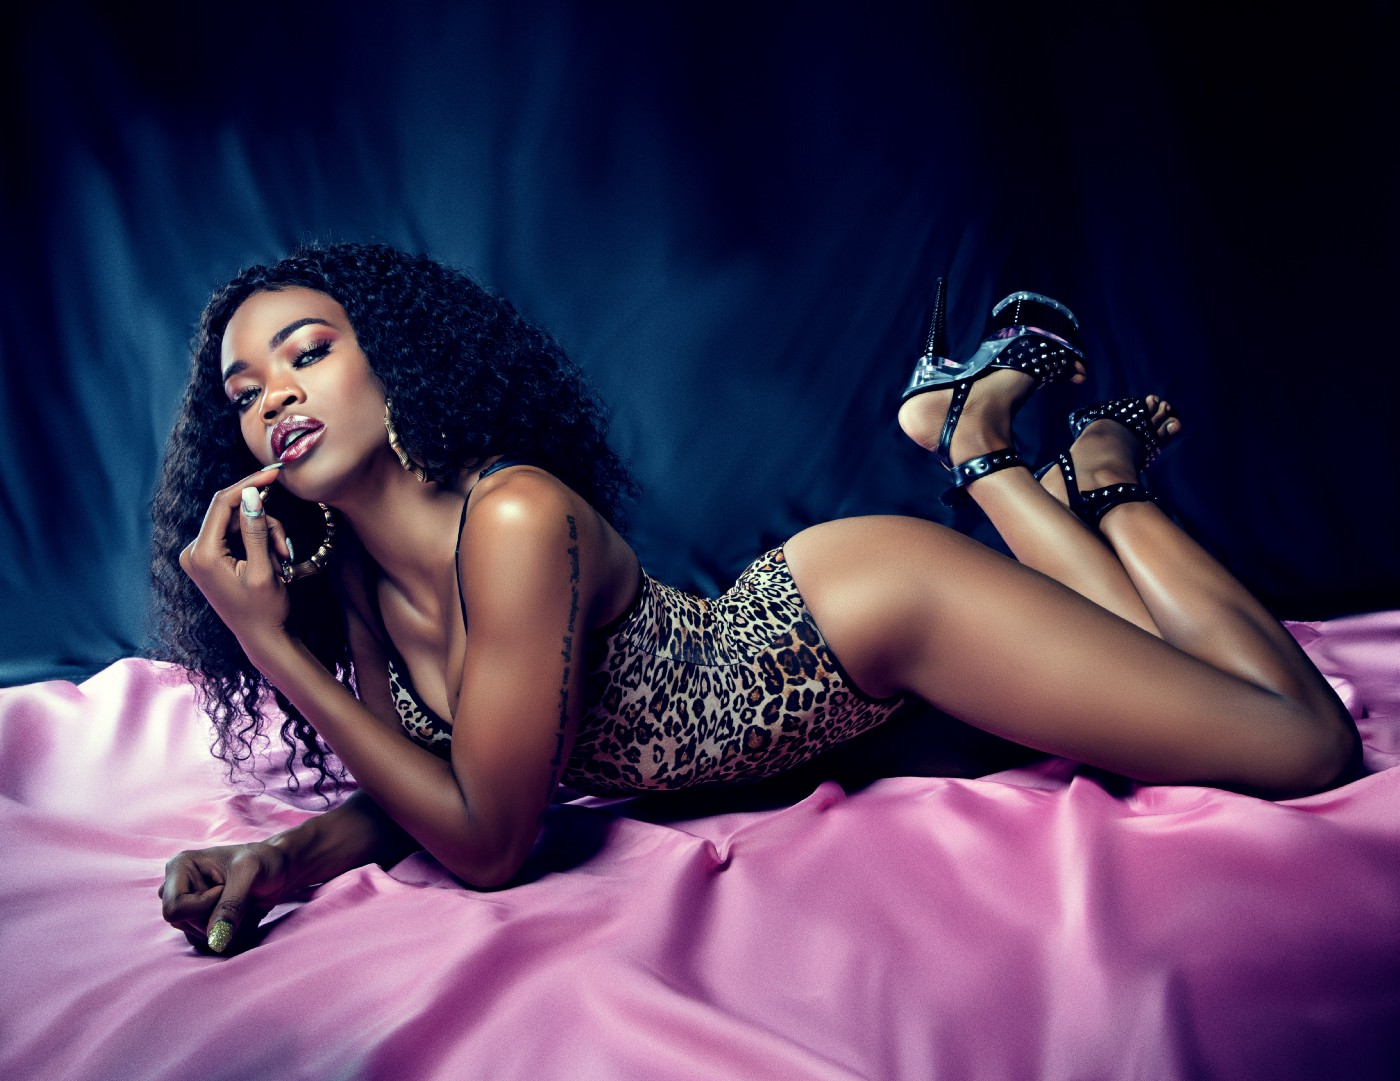 Black woman in sexy pose on her stomach, finger to her lip. Wearing a leopard print leotard style body suit and leopard print high heels. Long, curly black hair. Sultry makeup.